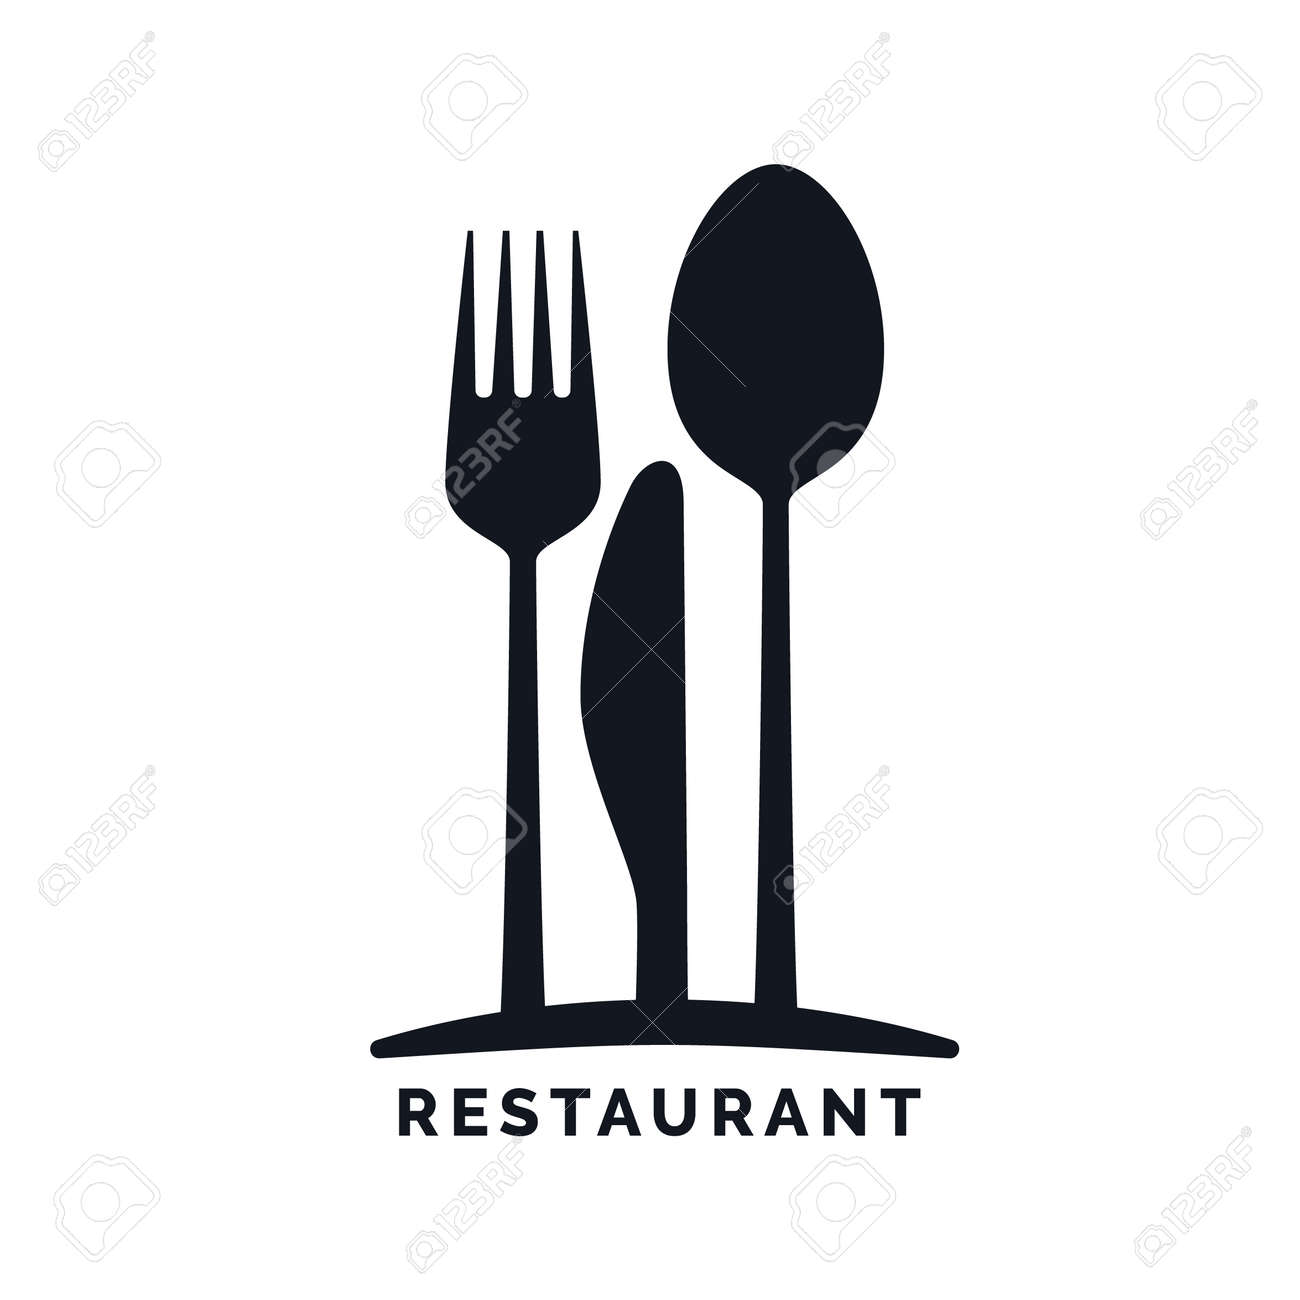 Gastronomy restaurant symbol fork knife and spoon logo gastronomy restaurant symbol fork knife and spoon logo template stock vector buycottarizona Image collections